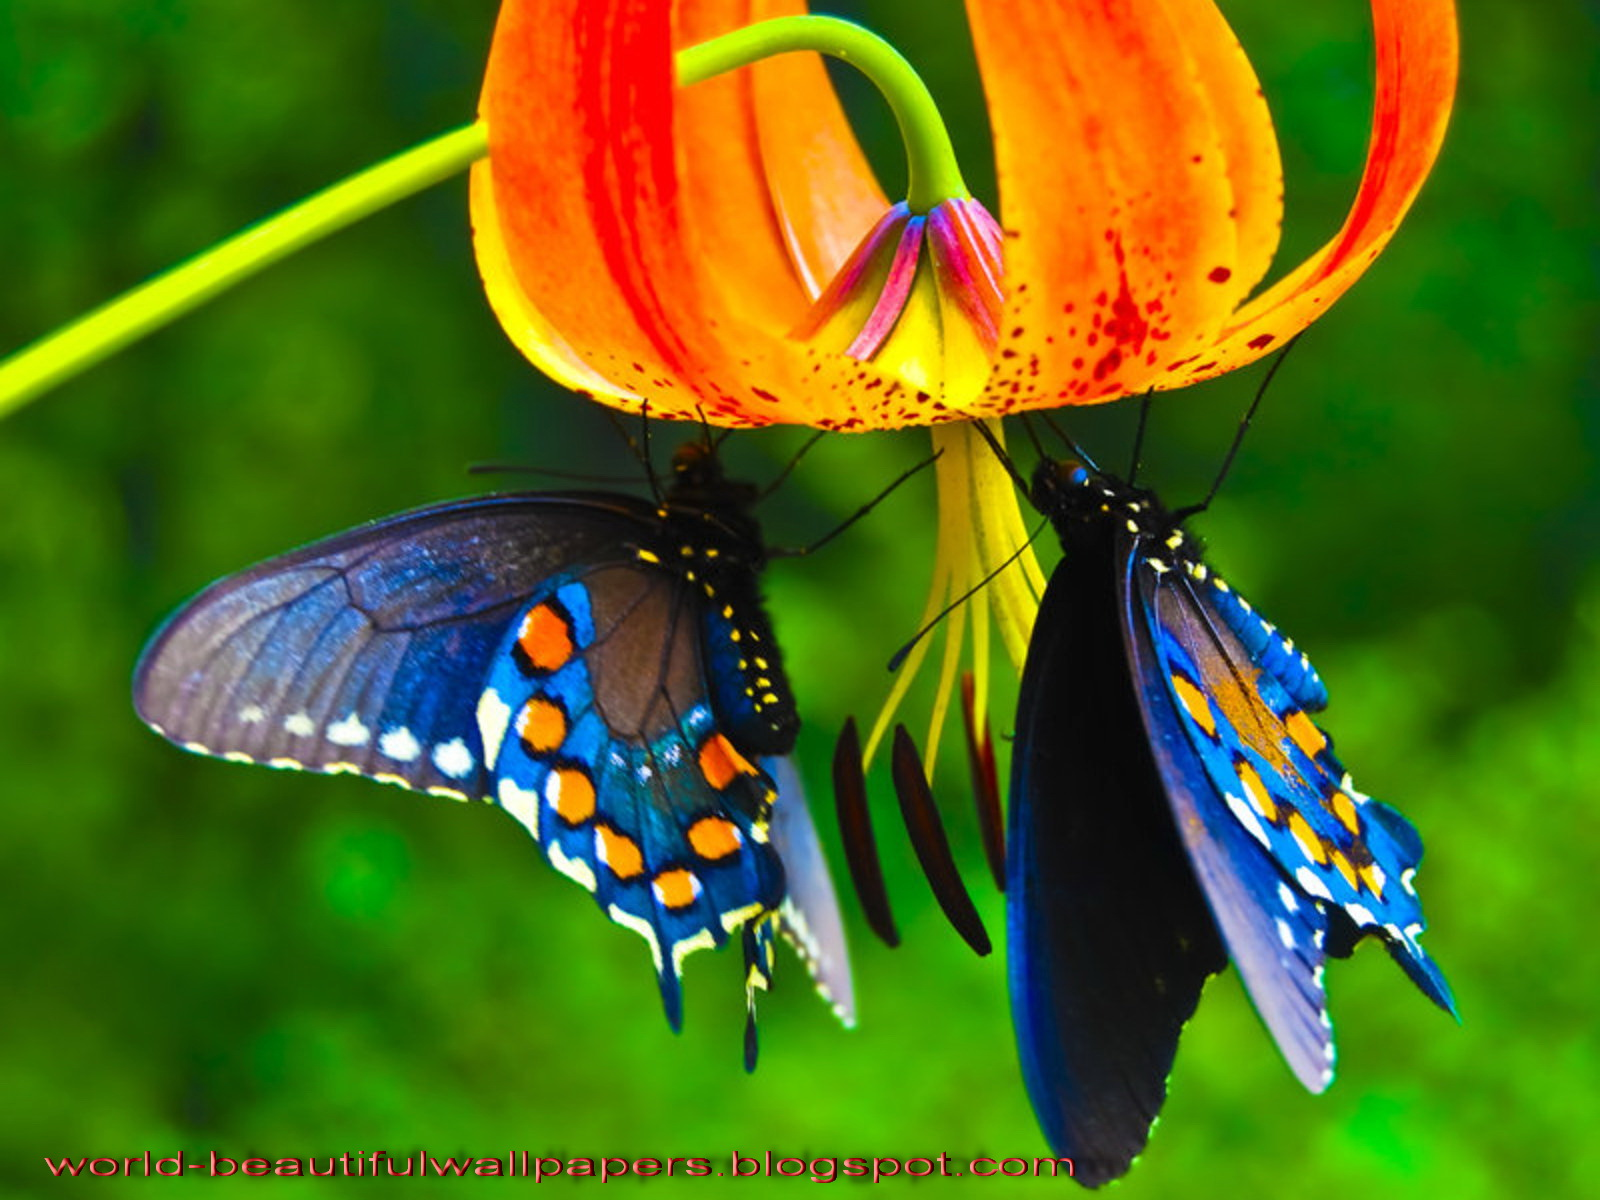 Beautiful Butterfly Wallpapers HD The Best Wallpapers 1600x1200